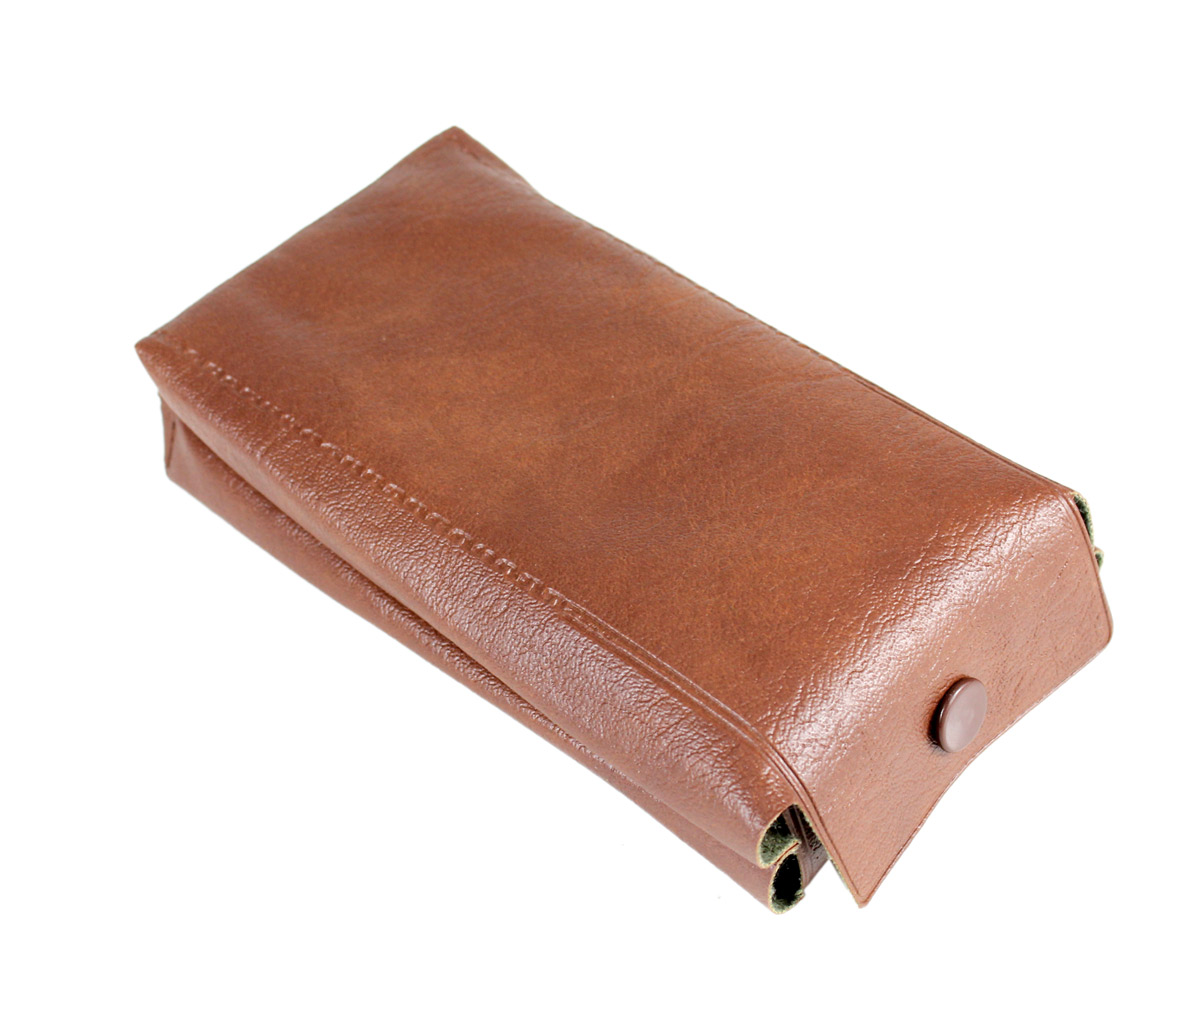 Simulated leather case provided for extra protection and safety of the Chess board.